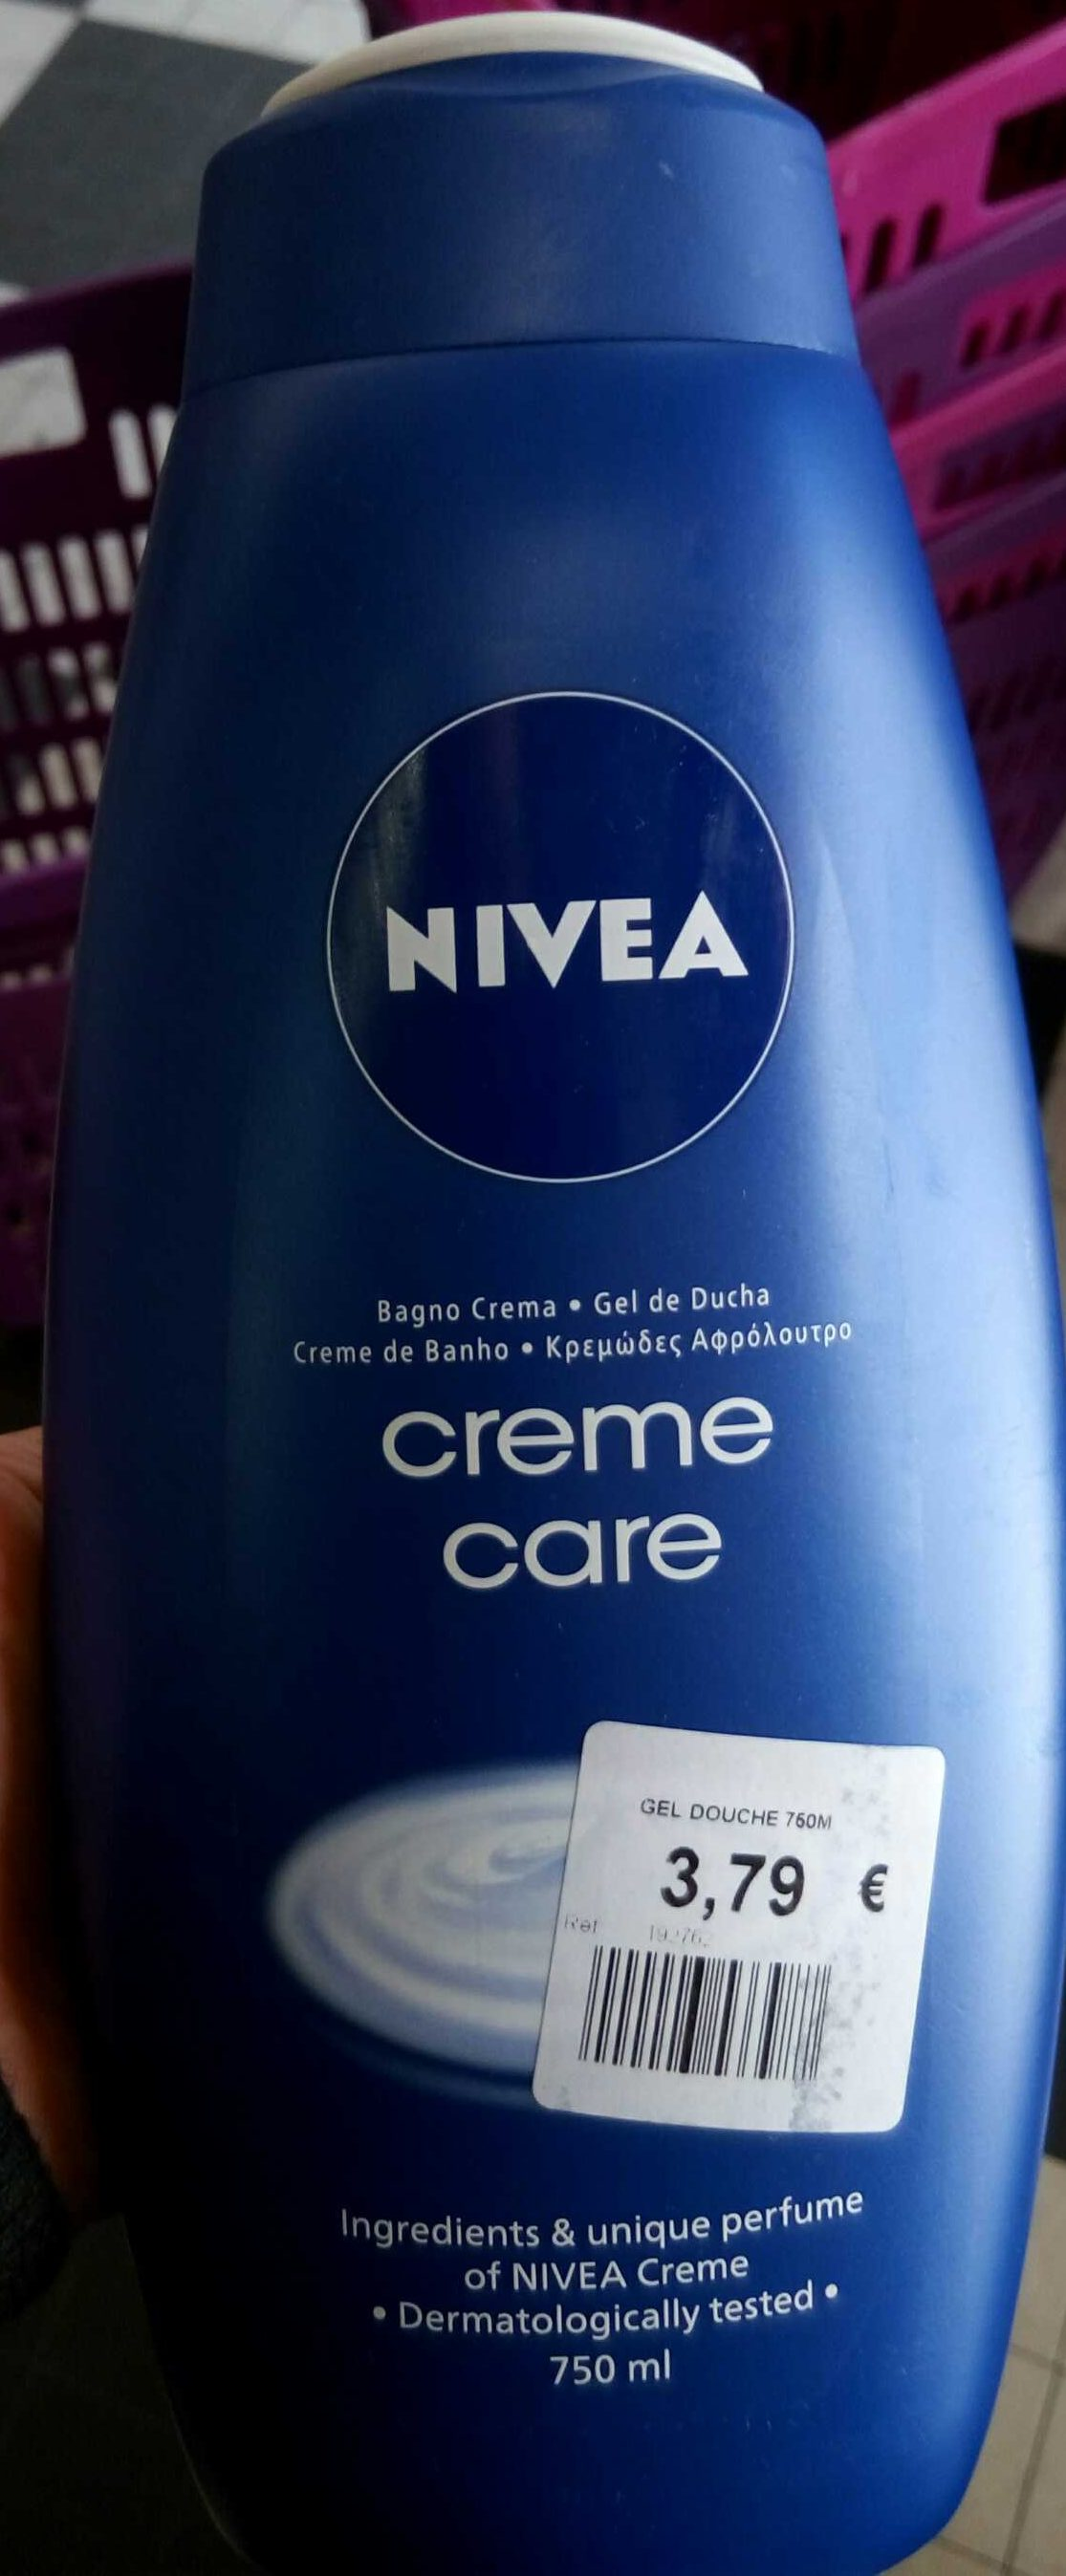 Creme Care - Product